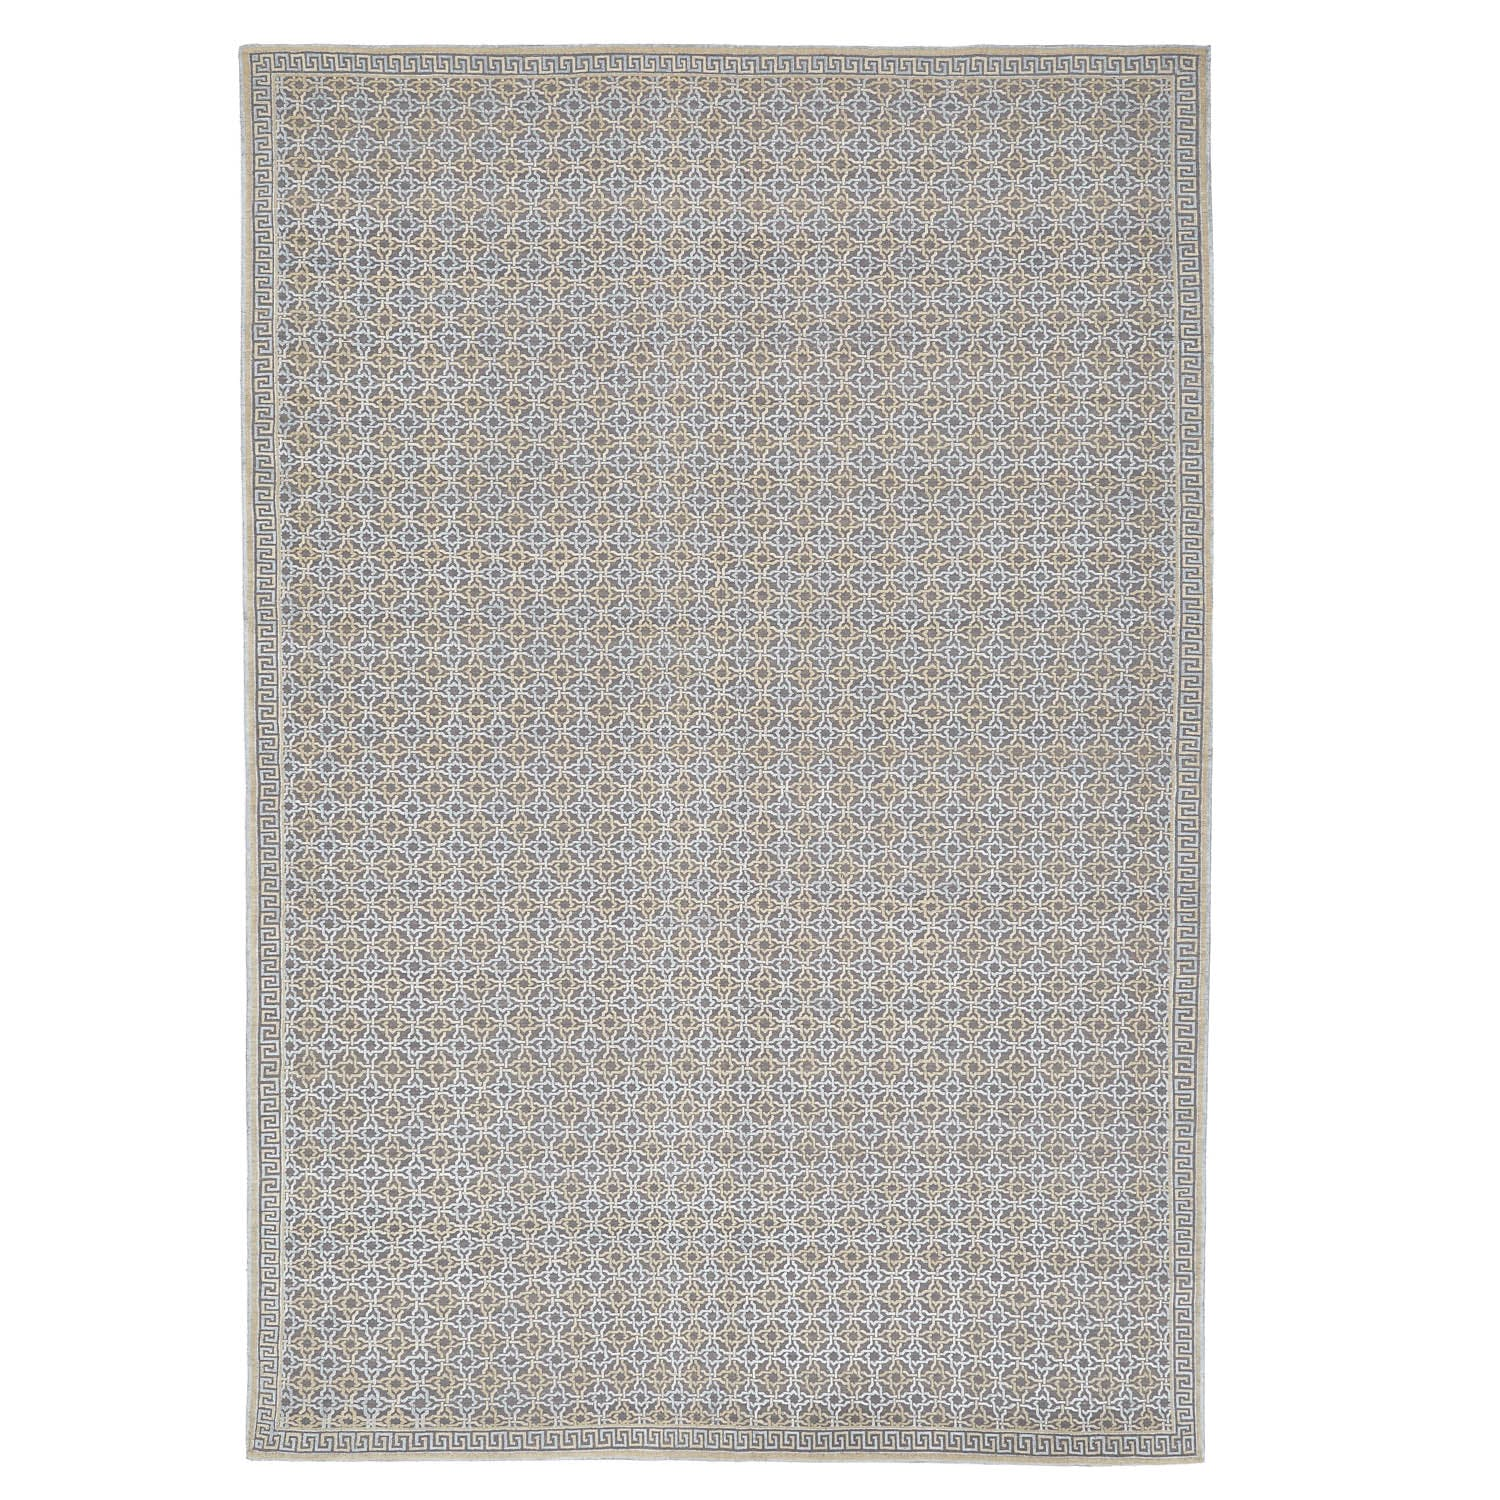 Product Image - Transitional Rug - 10'x14'